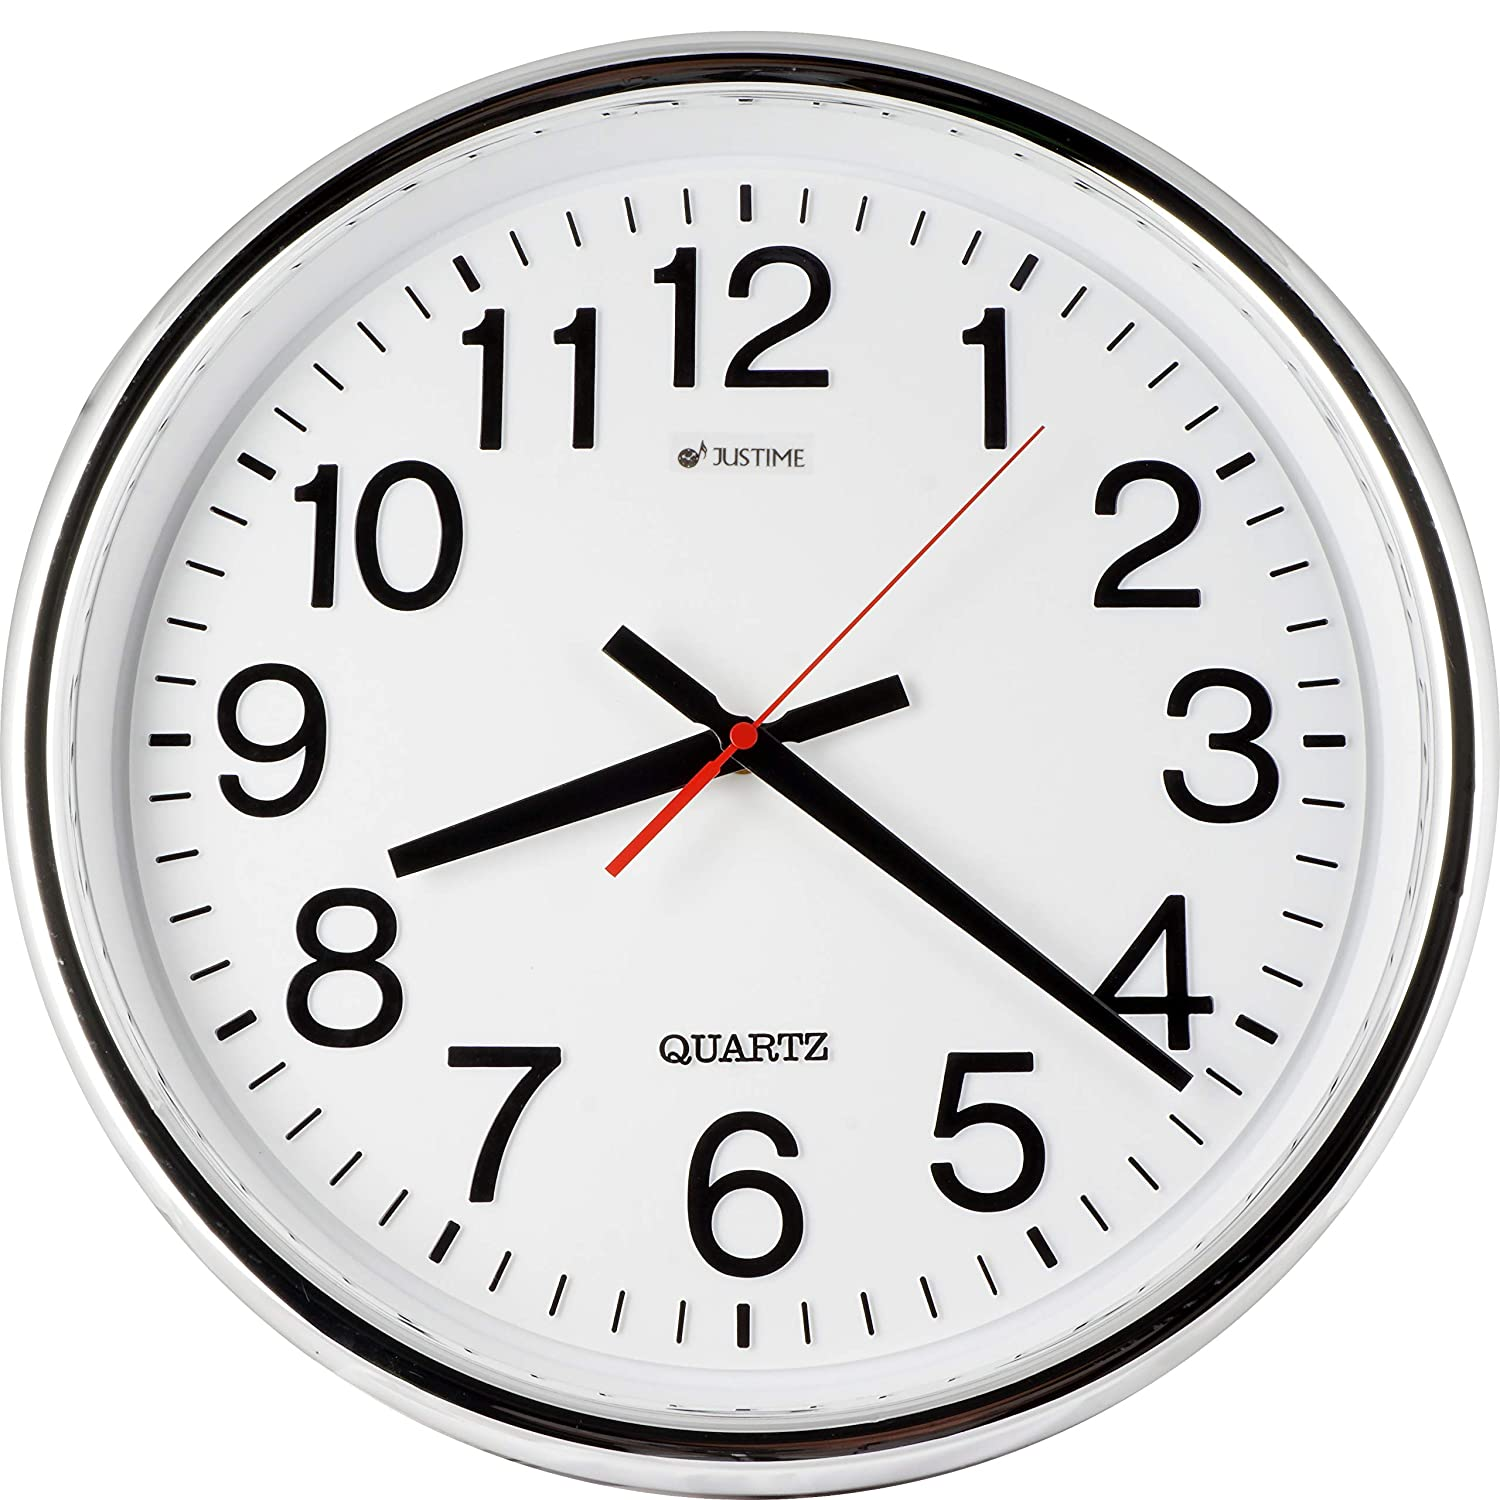 ISHIWA 16-inch Large Easy to Read 3D Numerals Quartz Wall Clock Quiet Non-ticking Movement, Office, Home Decor, Classroom (W01411 Chrome)